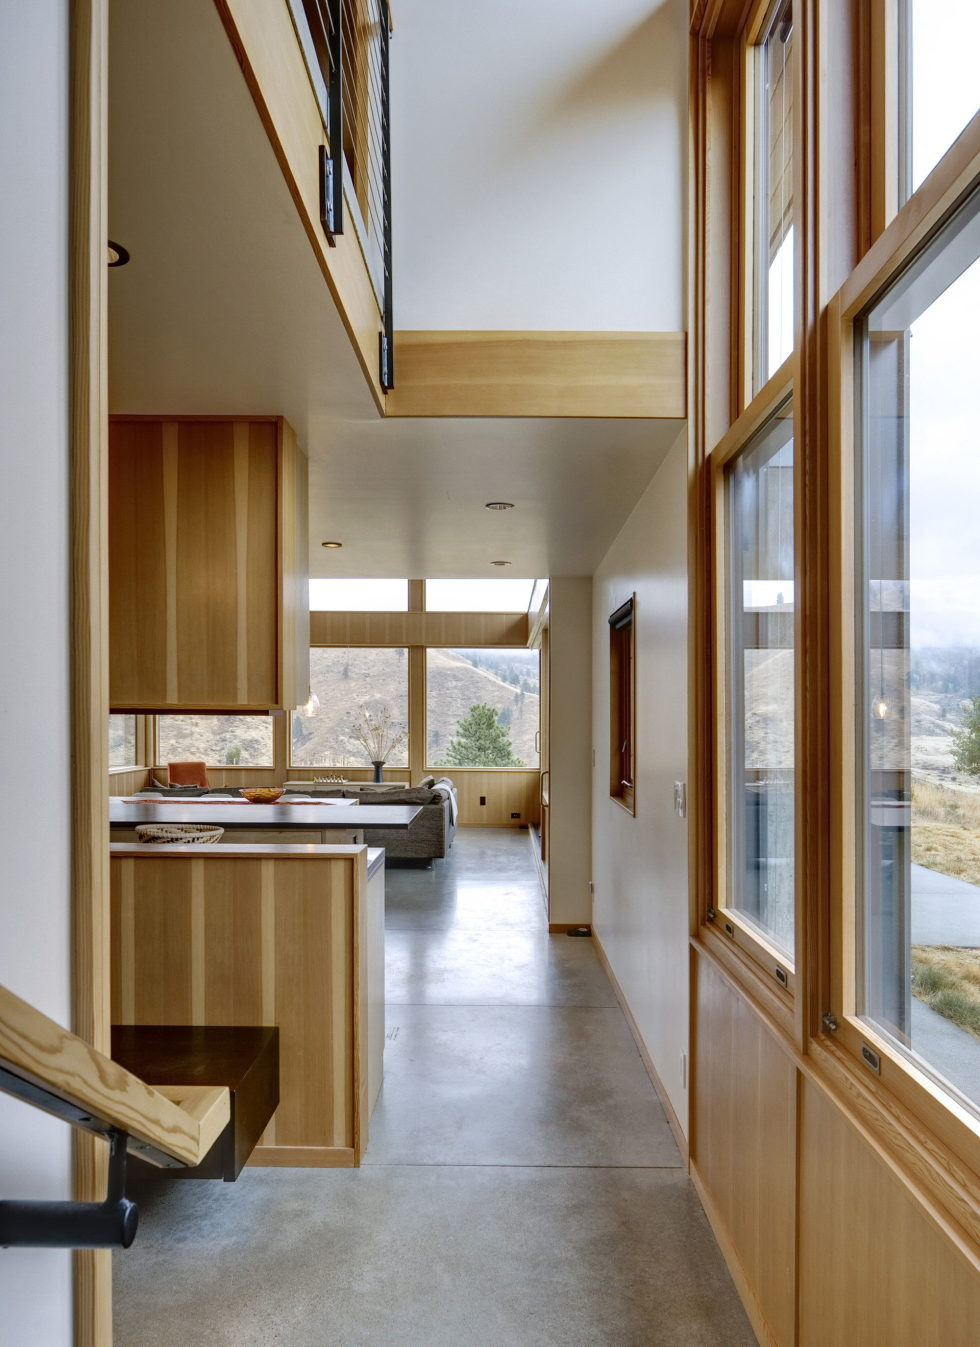 nahahum-the-cozy-house-aslope-the-hill-in-the-usa-26